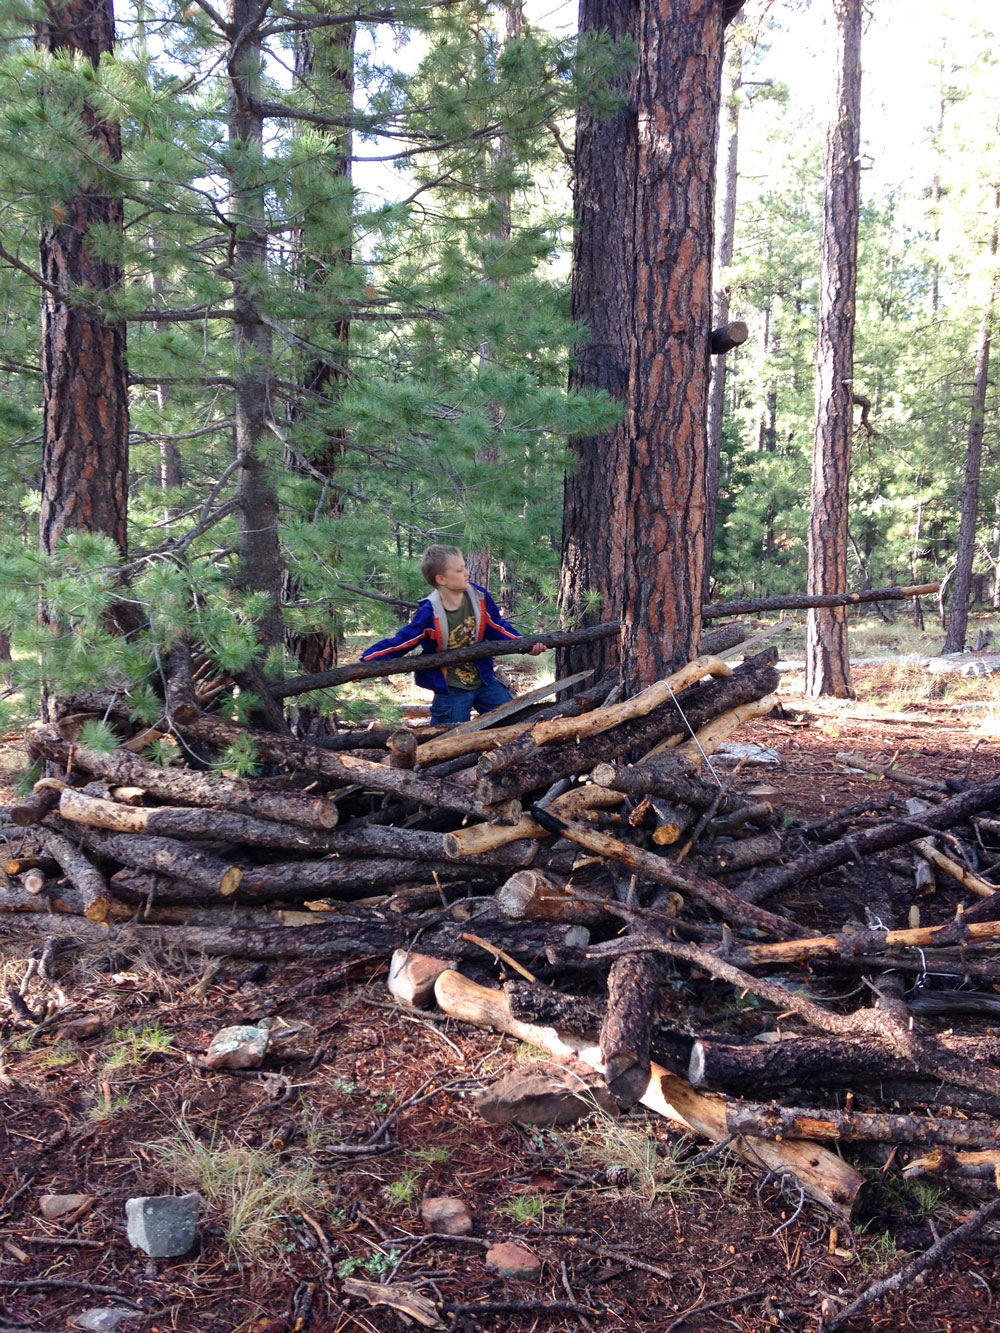 Fort Building - Woods Canyon Lake, Sitgreaves National Forest, AZ